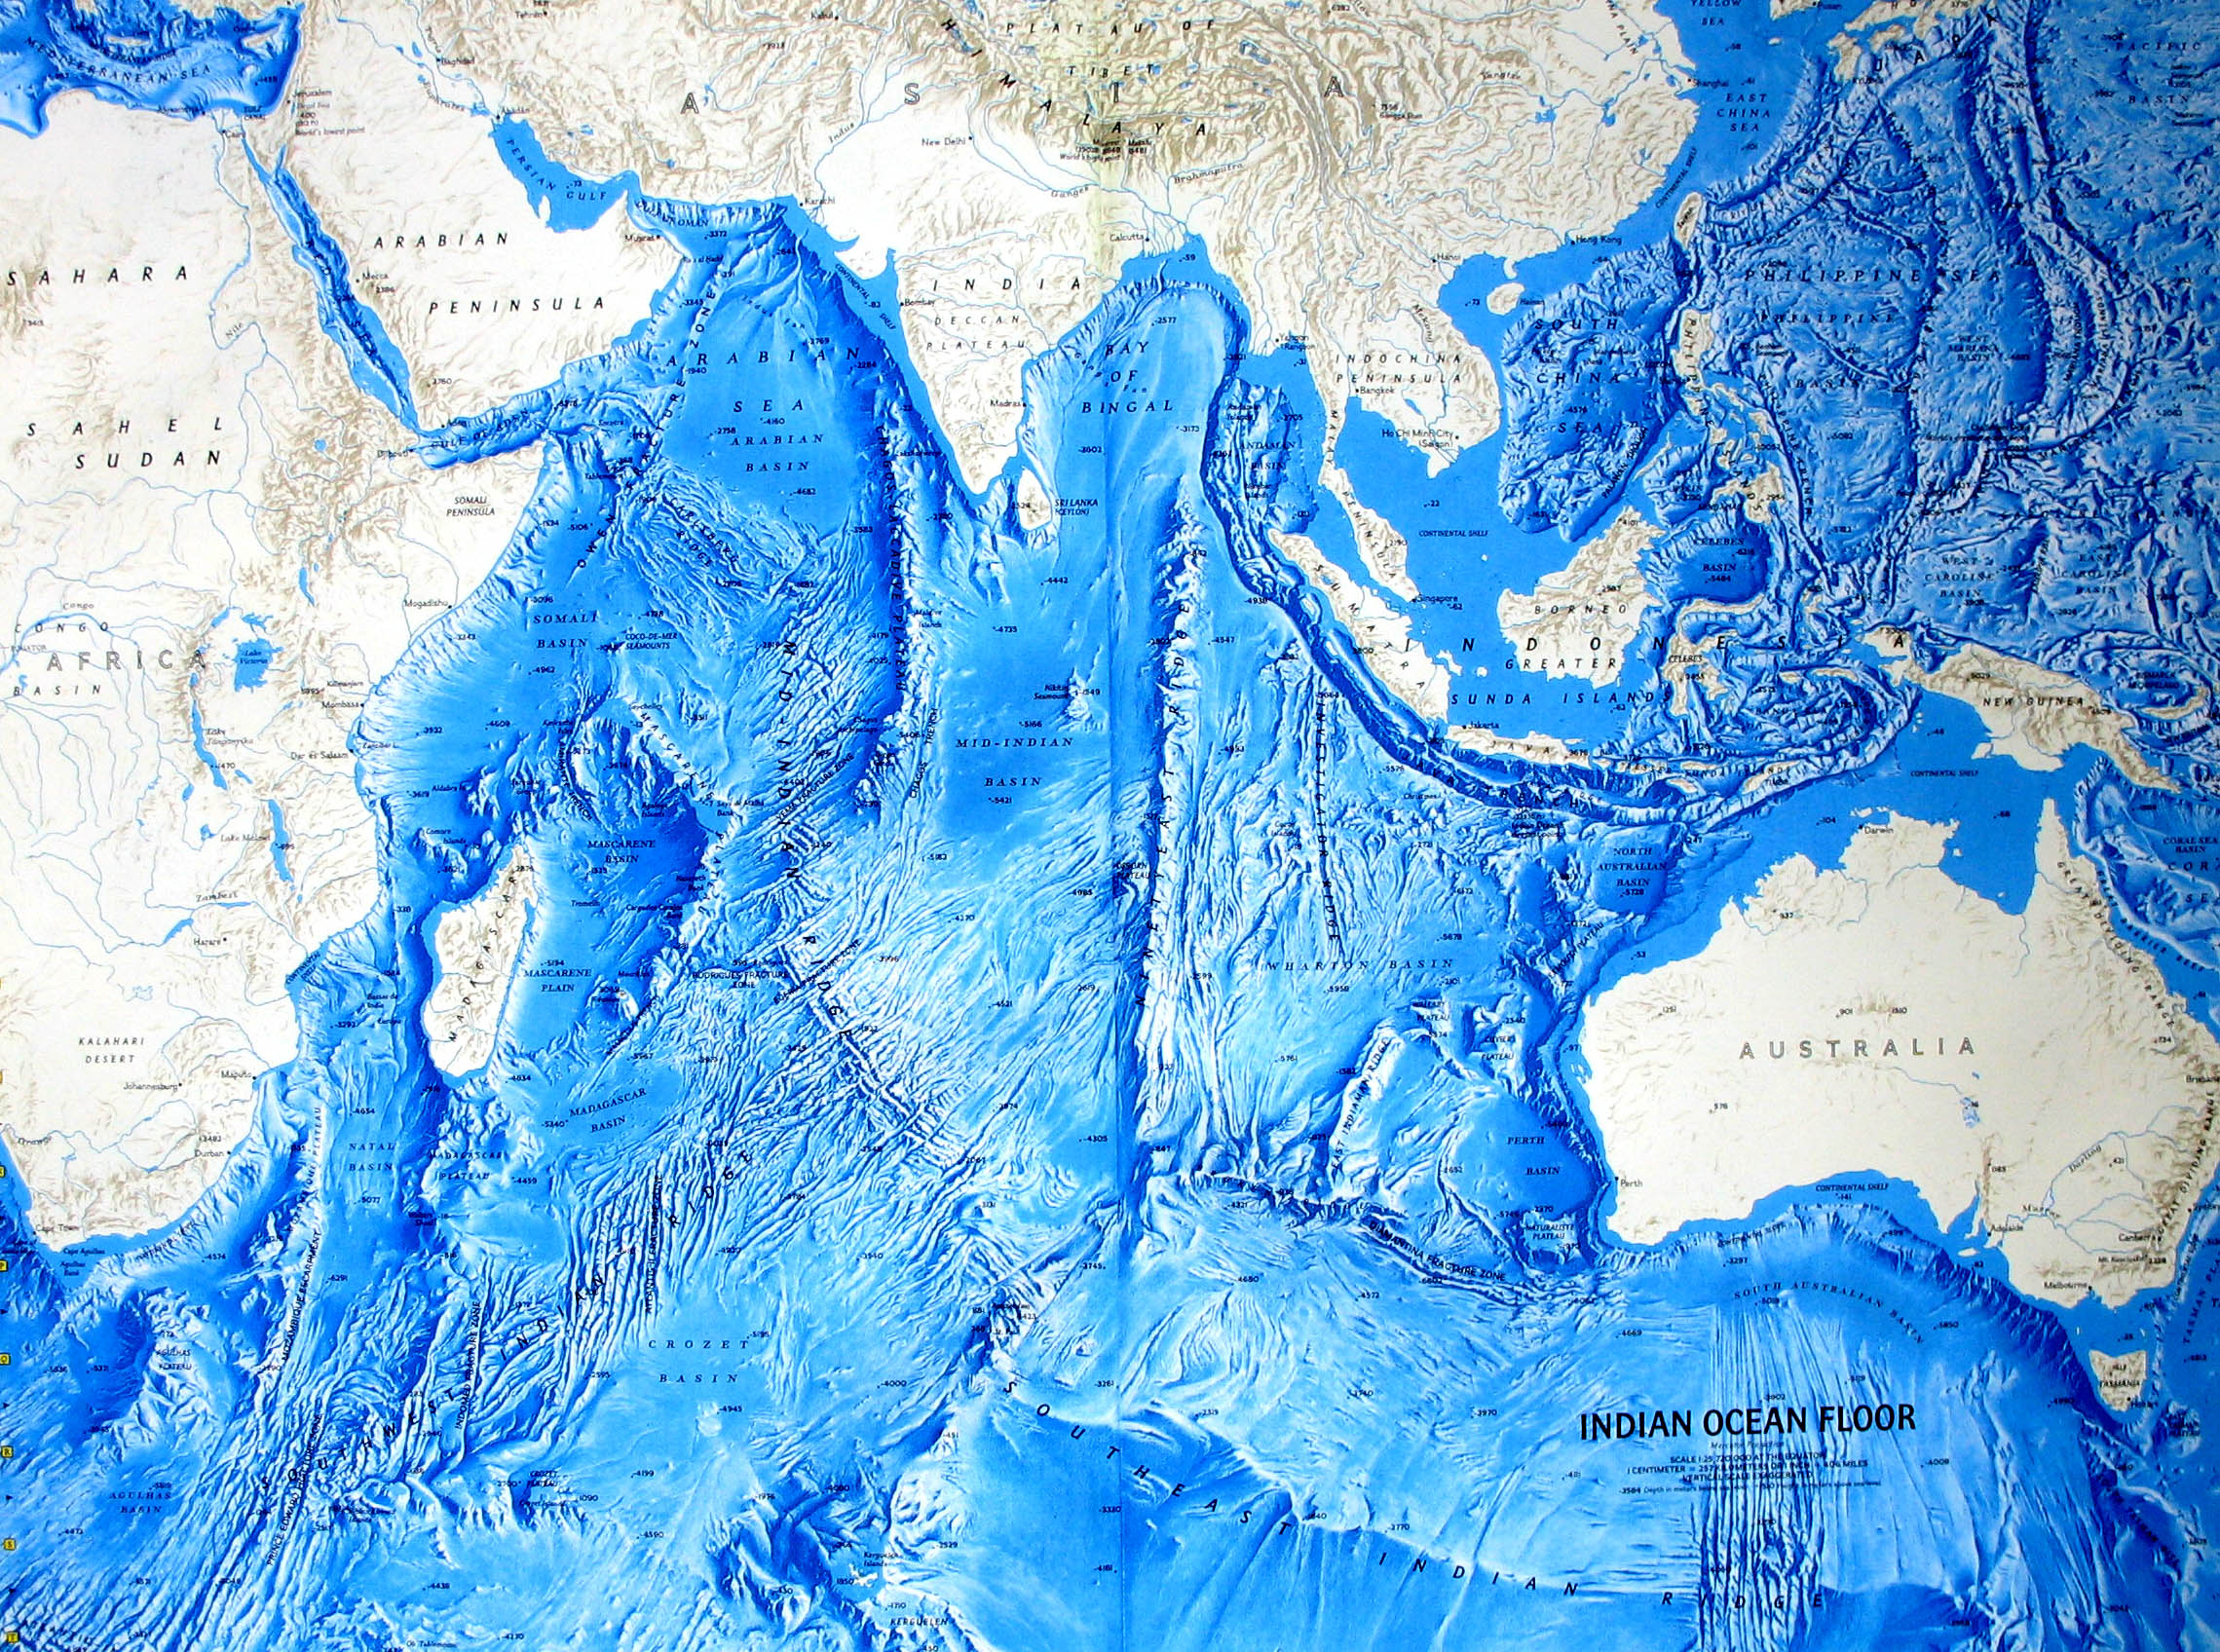 Pacific Ocean Topographic Map.Ocean Floor Relief Maps Detailed Maps Of Sea And Ocean Depths